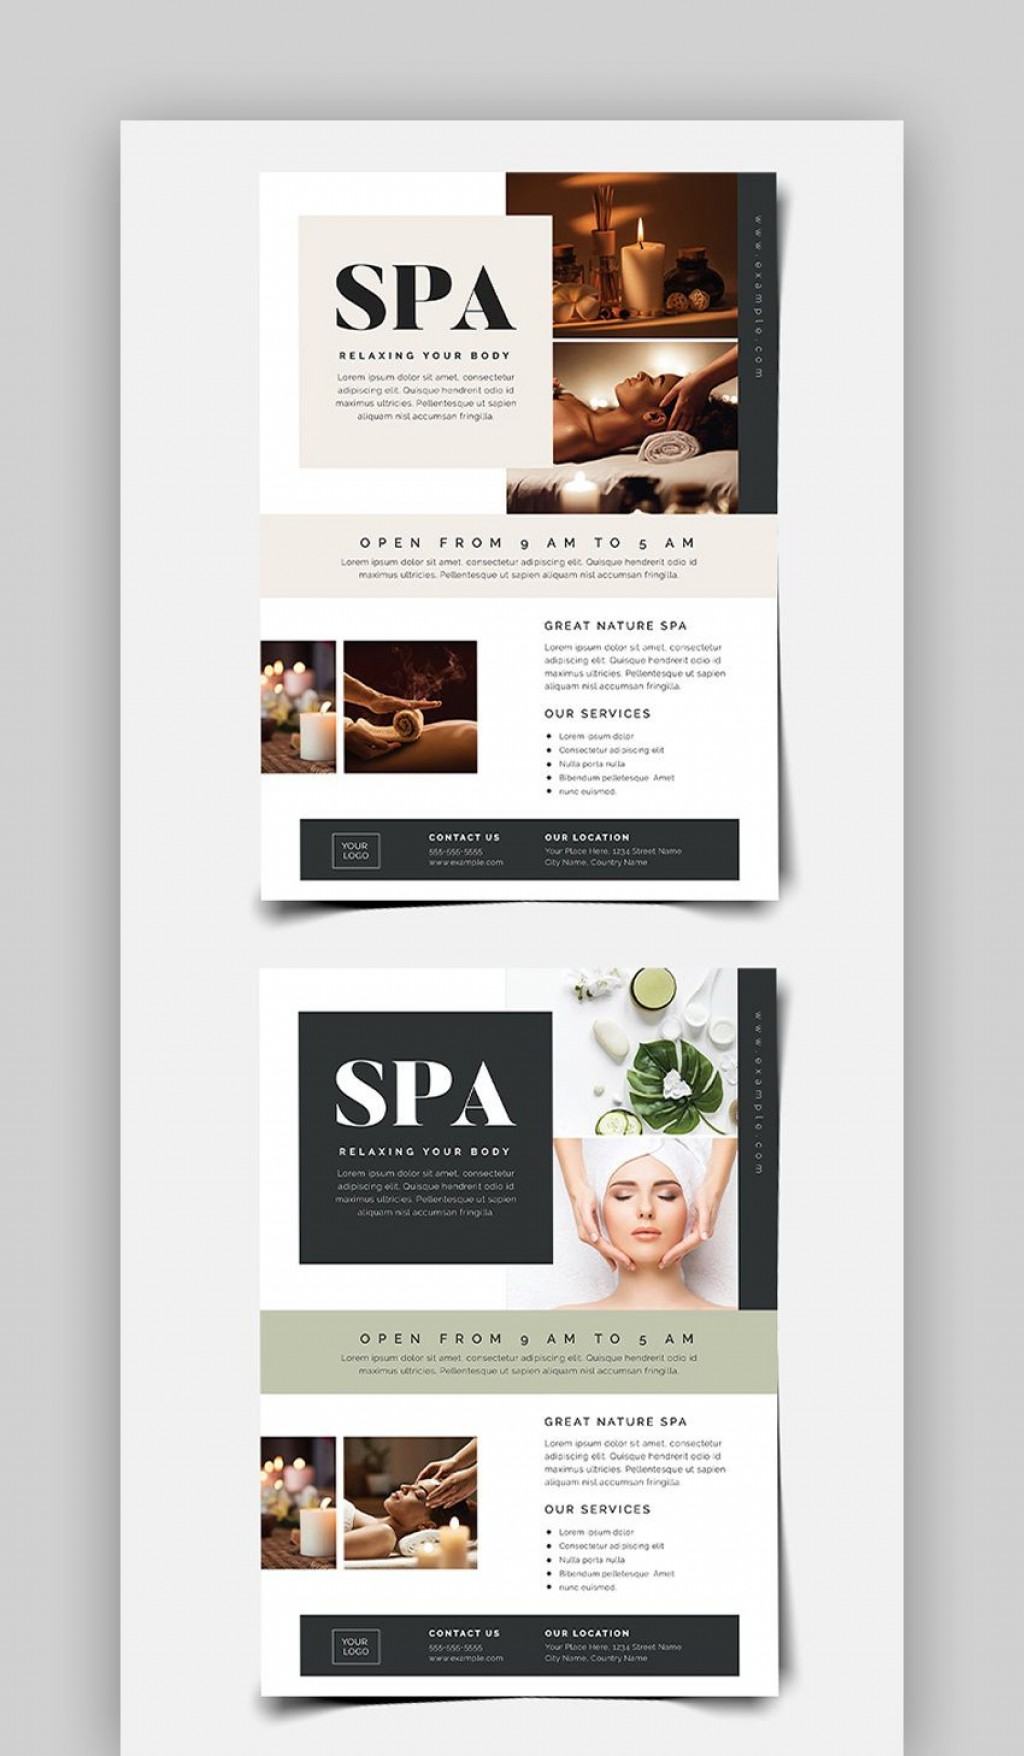 008 Surprising Photoshop Brochure Template Psd Free Download High Def Large